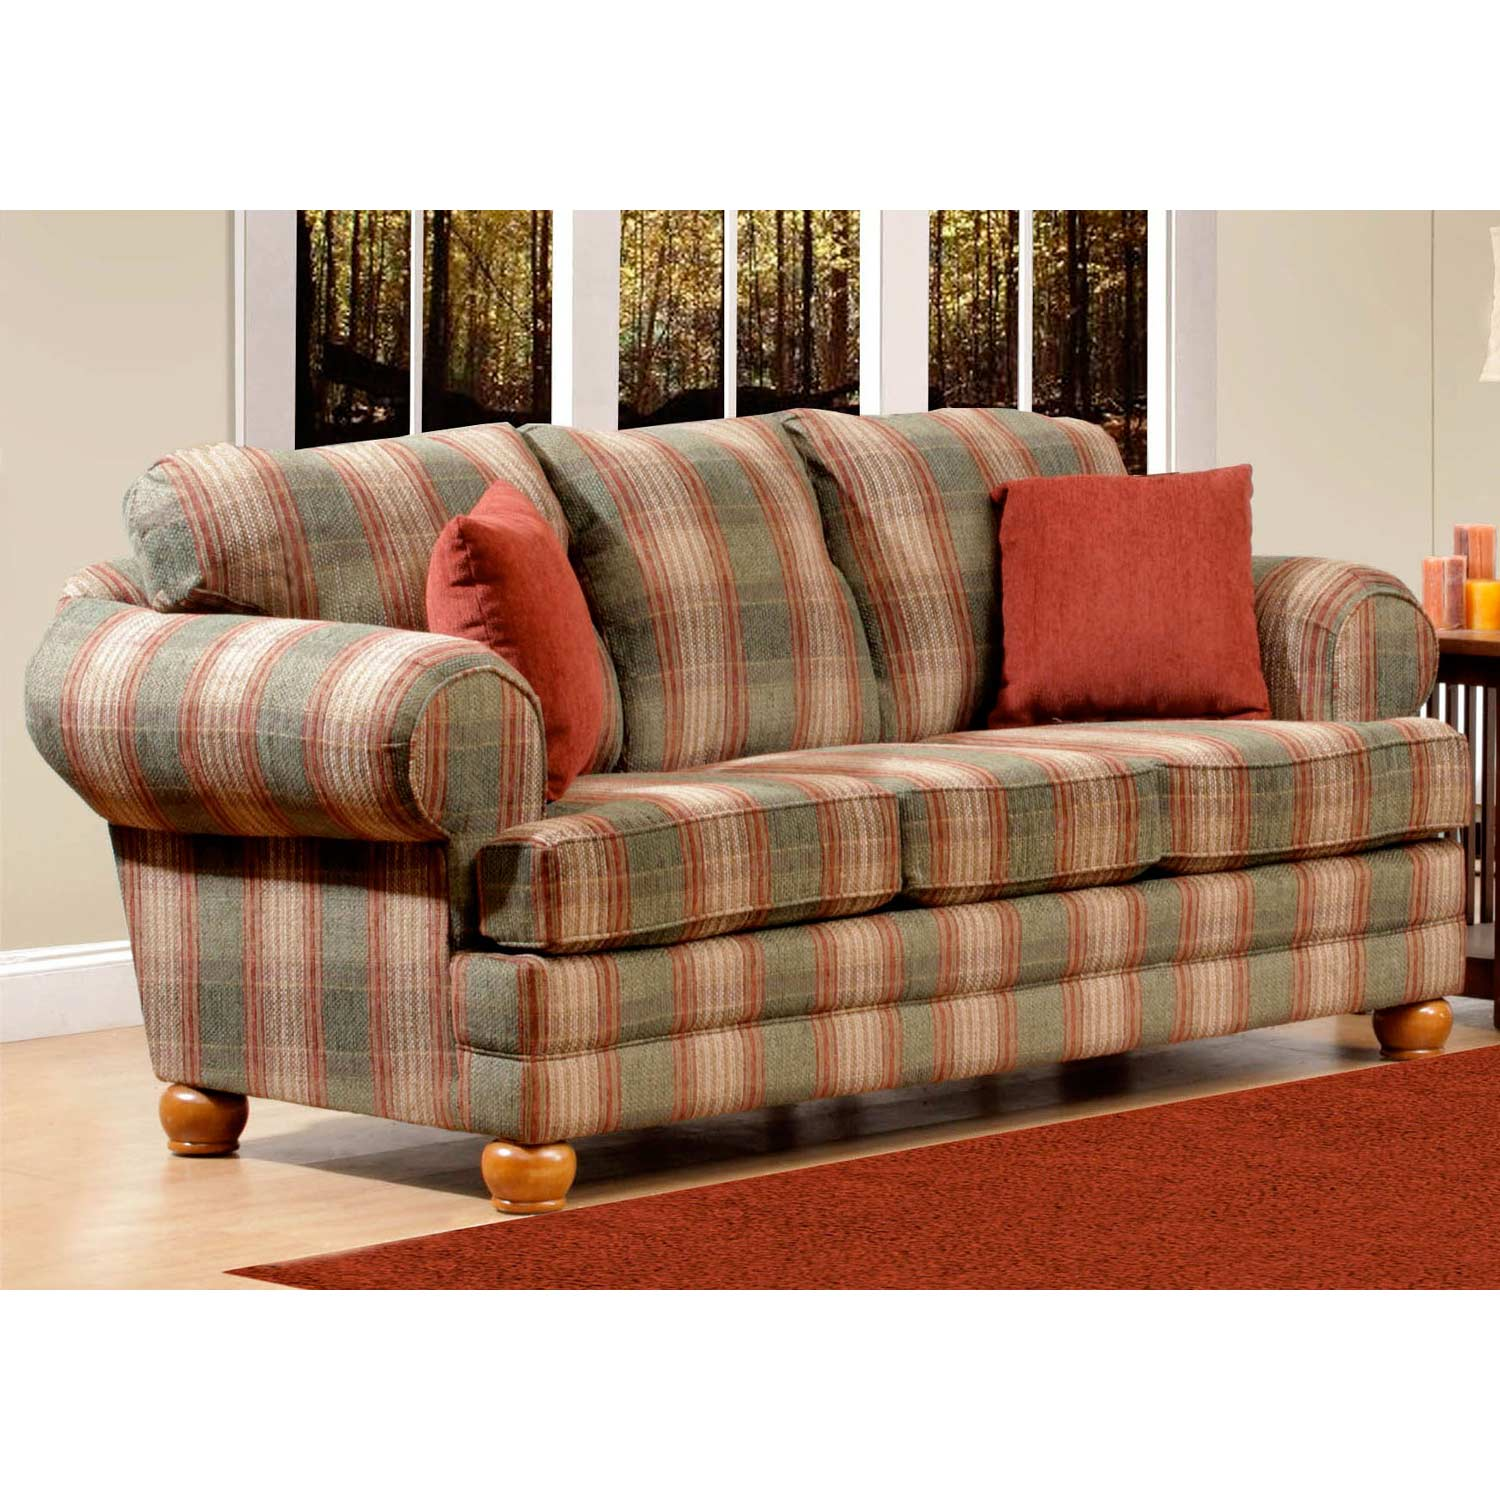 Plaid Furniture Country Living Room: Cedaredge Plaid Sofa - Pine Ridge Green Fabric